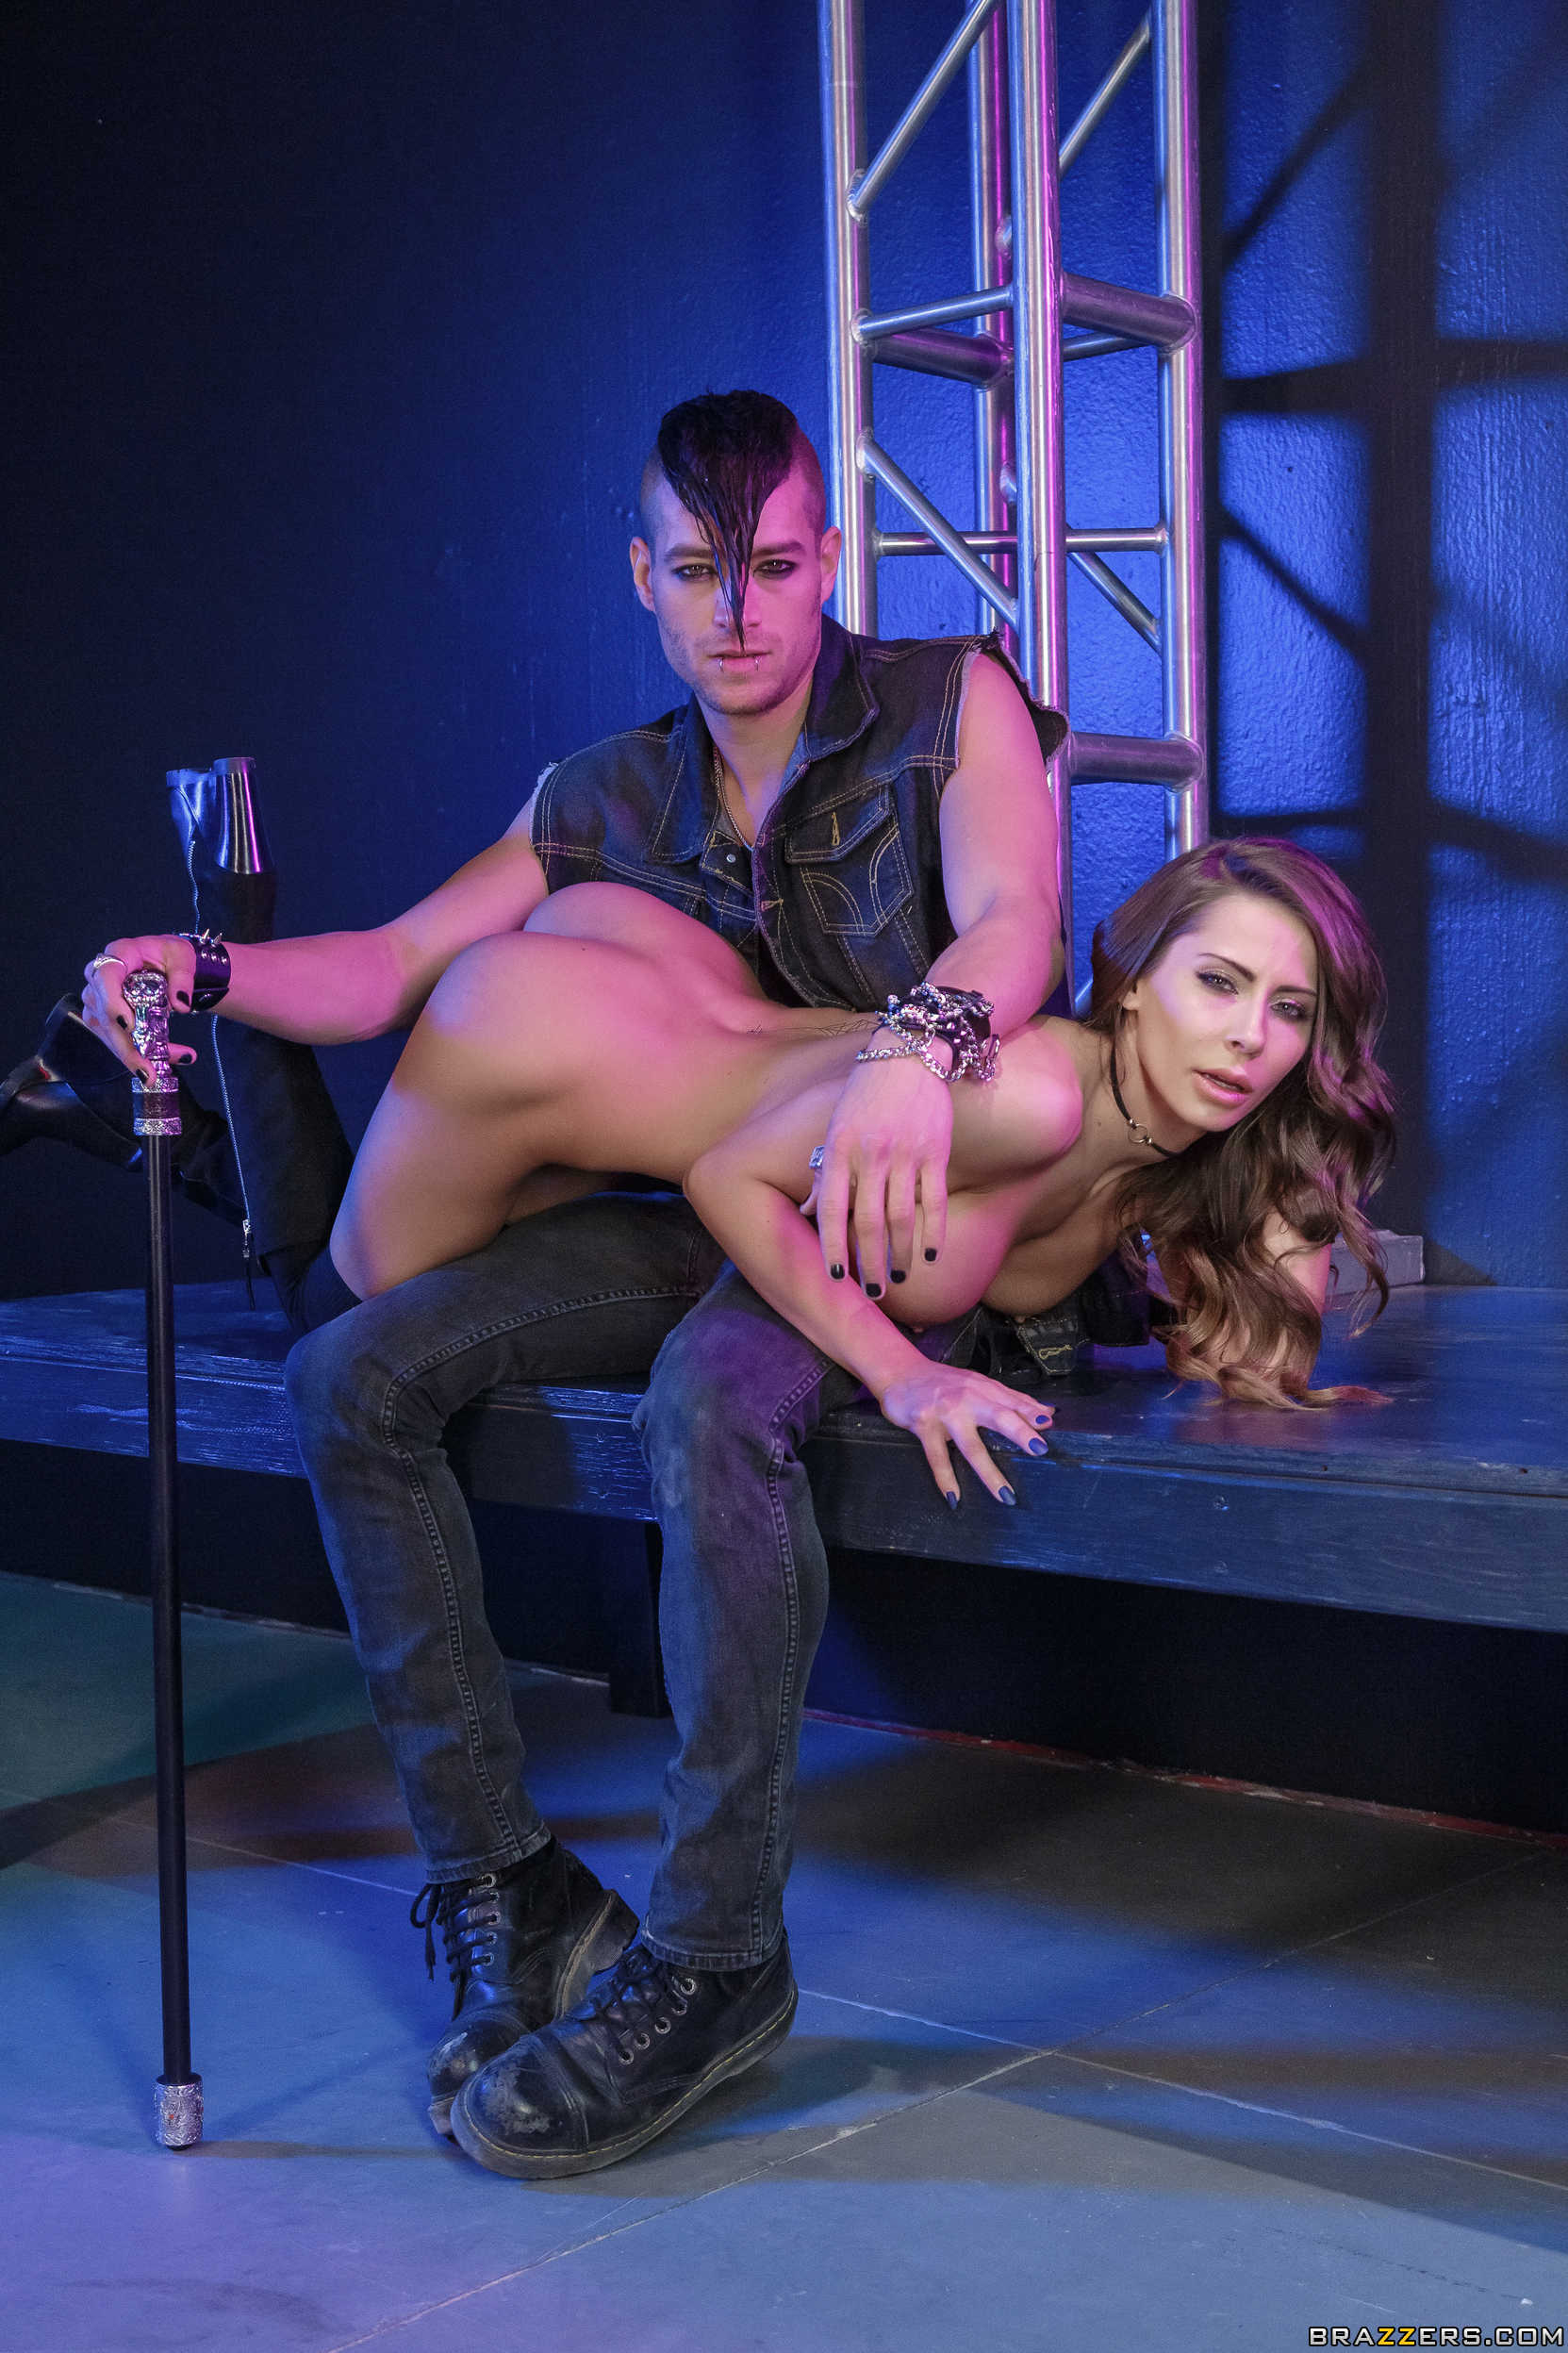 [ZZSeries.com / Brazzers.com] Madison Ivy - Xander's World Tour - Ep.1 (22.02.2018) [Big Tits, Big Tits Worship, Blowjob (POV), Boots, Bubble Butt, Caucasian, Euro, German, Innie Pussy, Jeans, Leather, Sun Glasses, Tank Top, Trimmed Pussy]